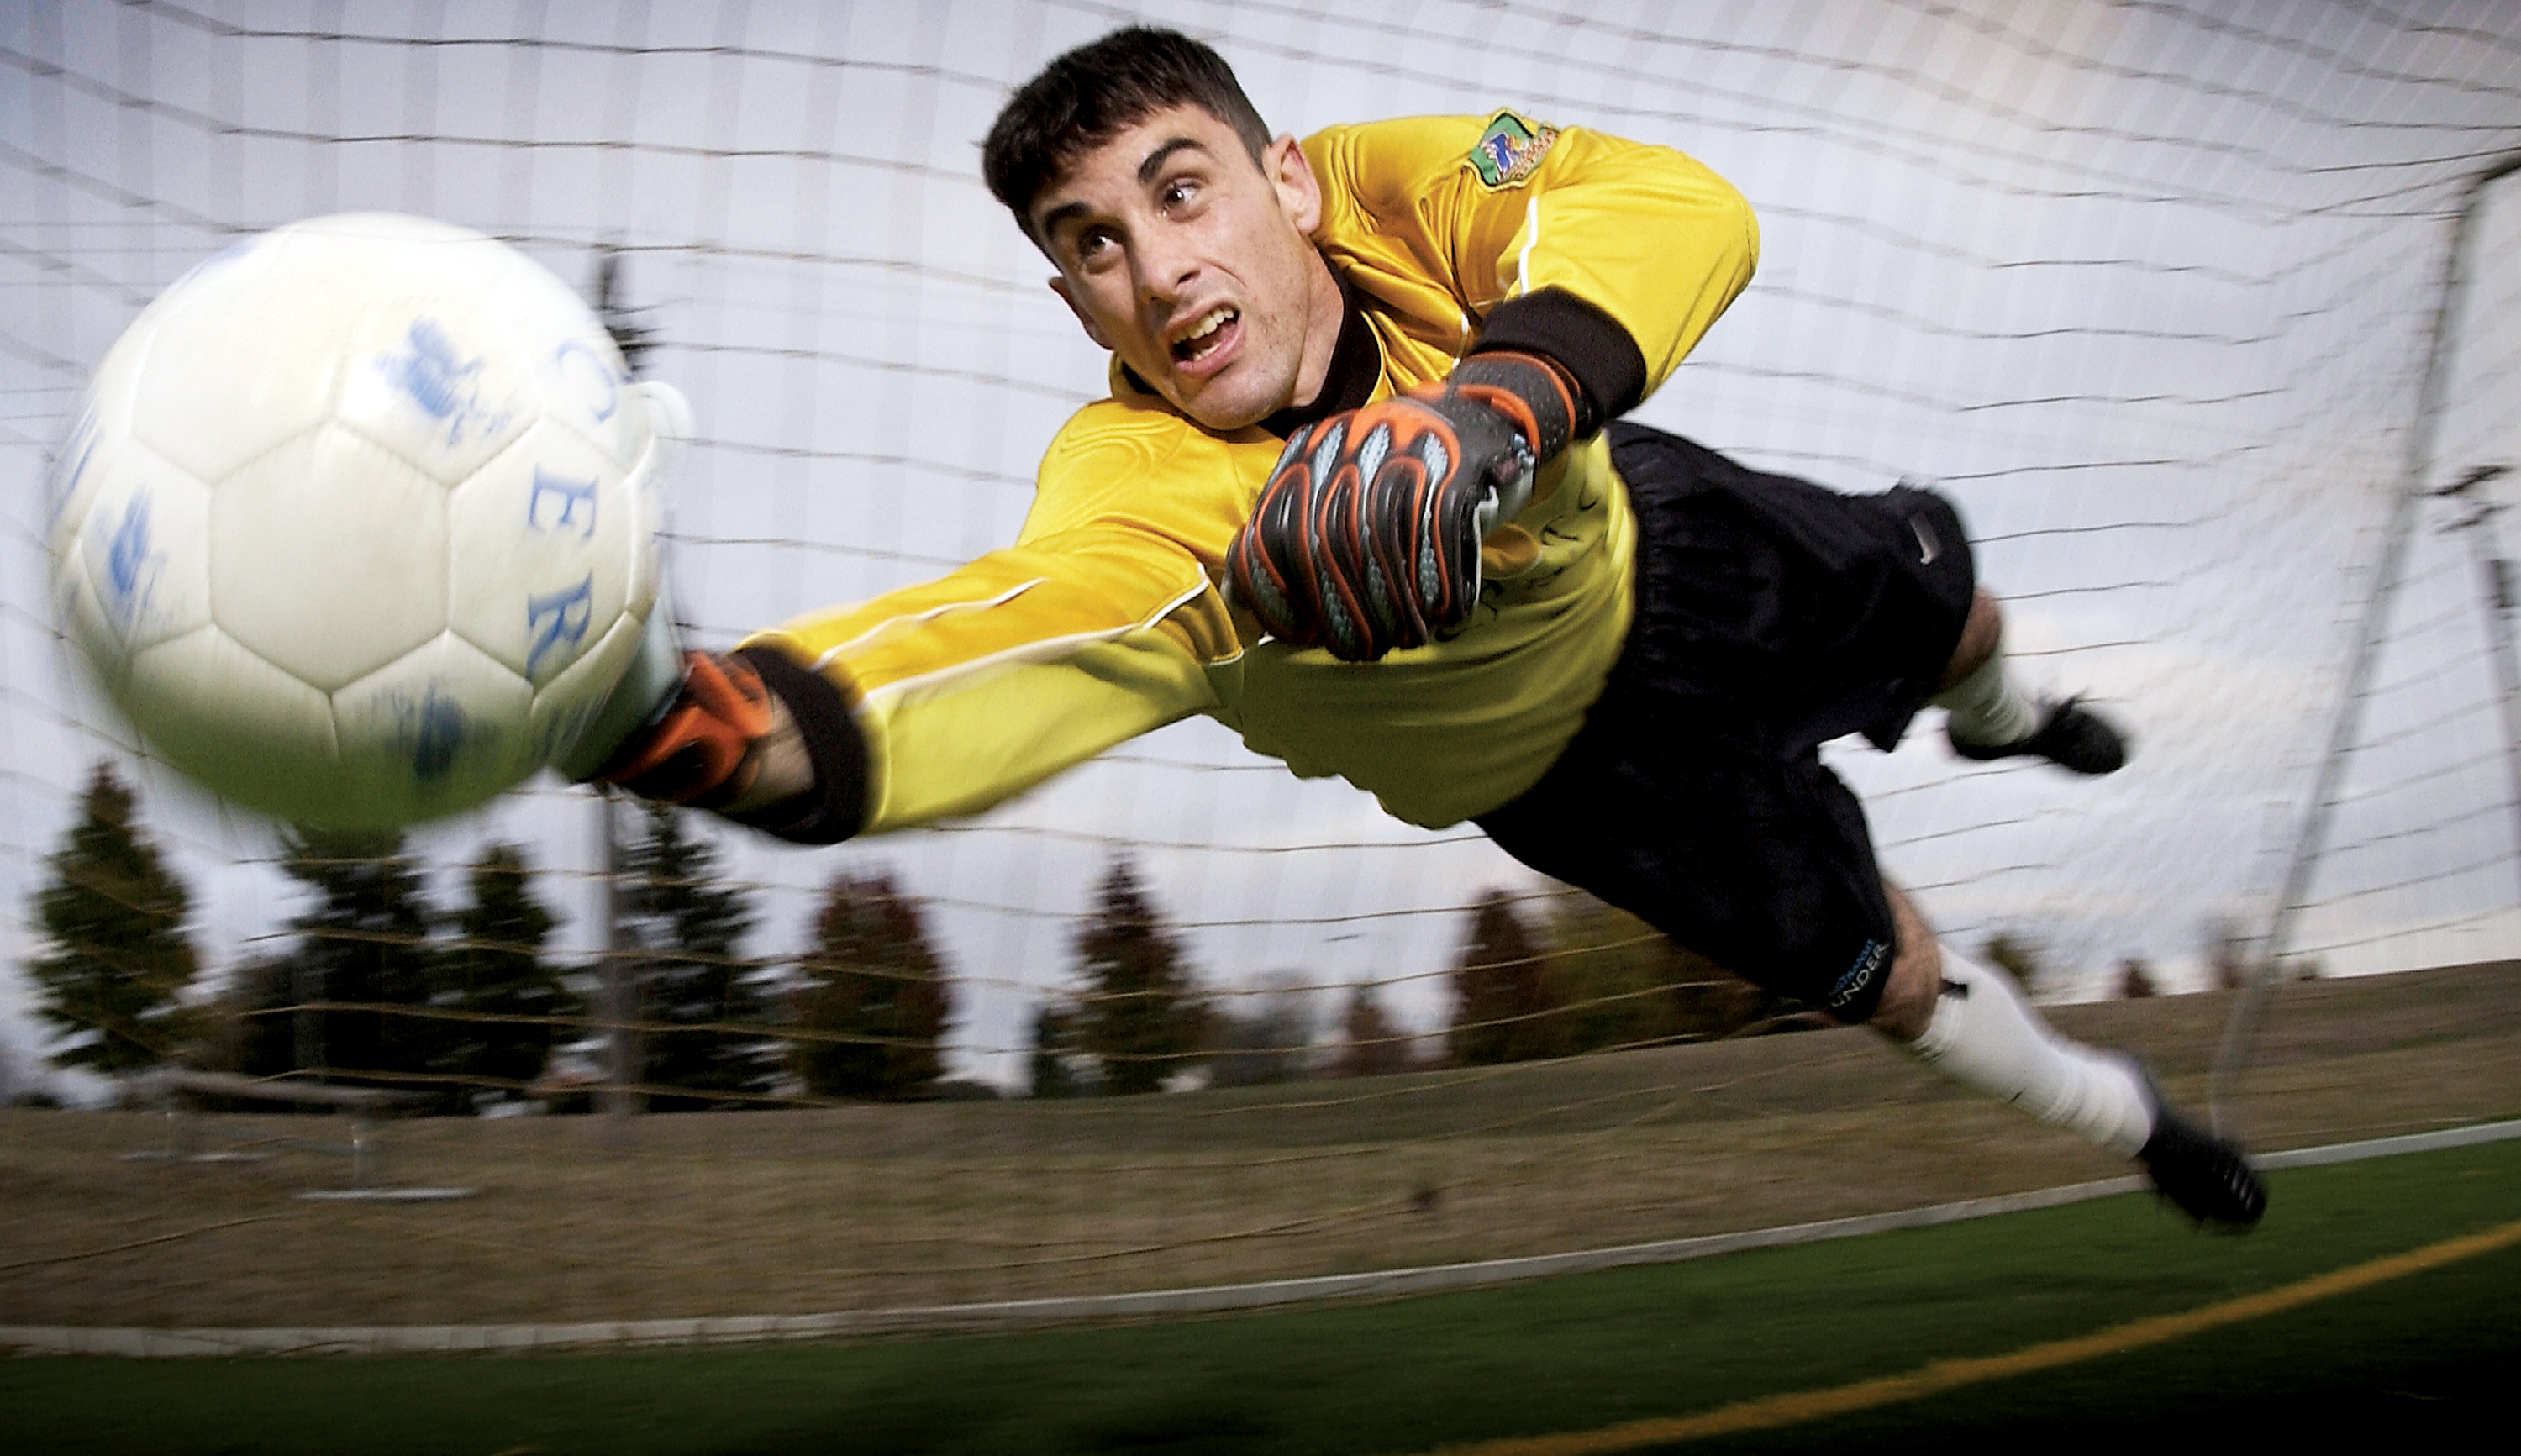 File:Soccer goalkeeper.jpg - Wikimedia Commons